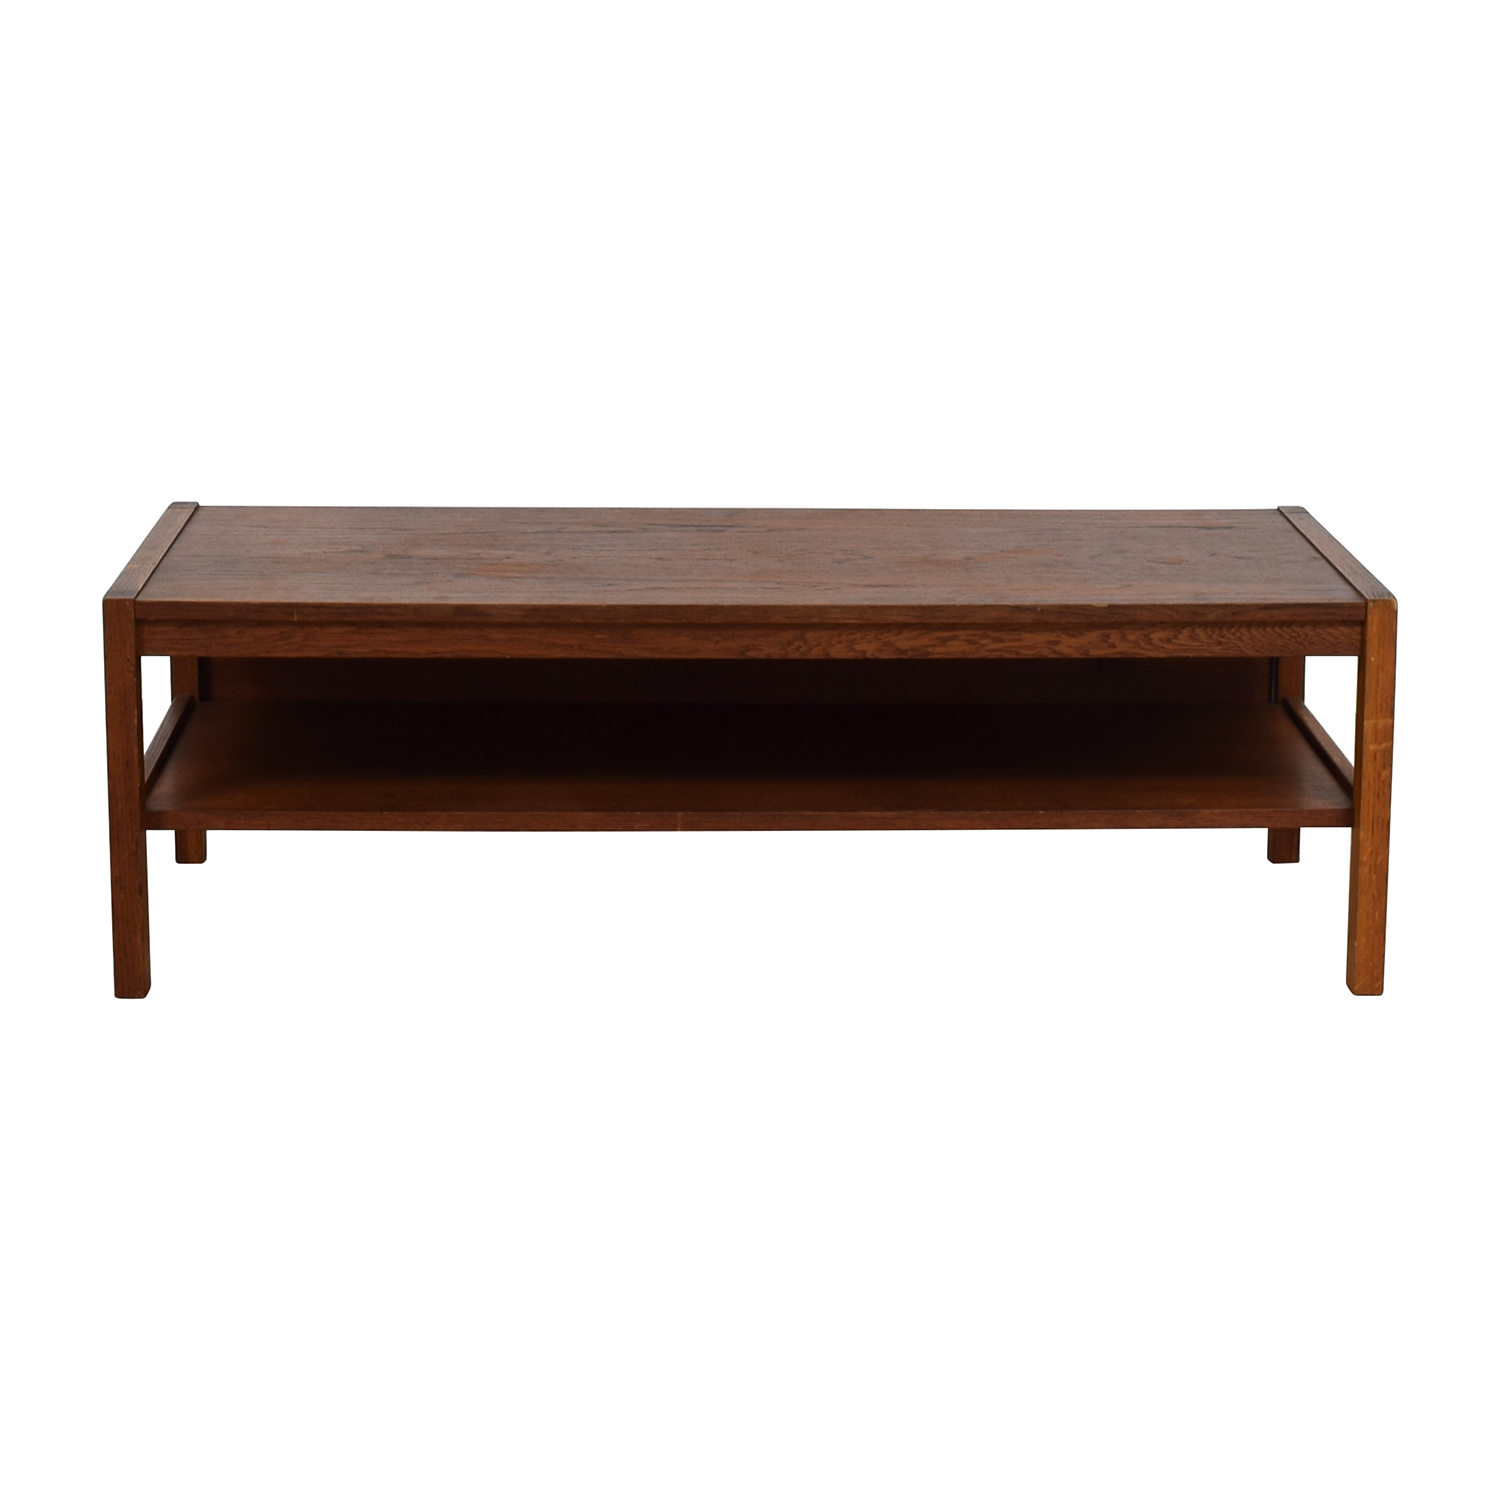 44% OFF Marble Top Coffee Table with Burgundy Carved Wood Tables